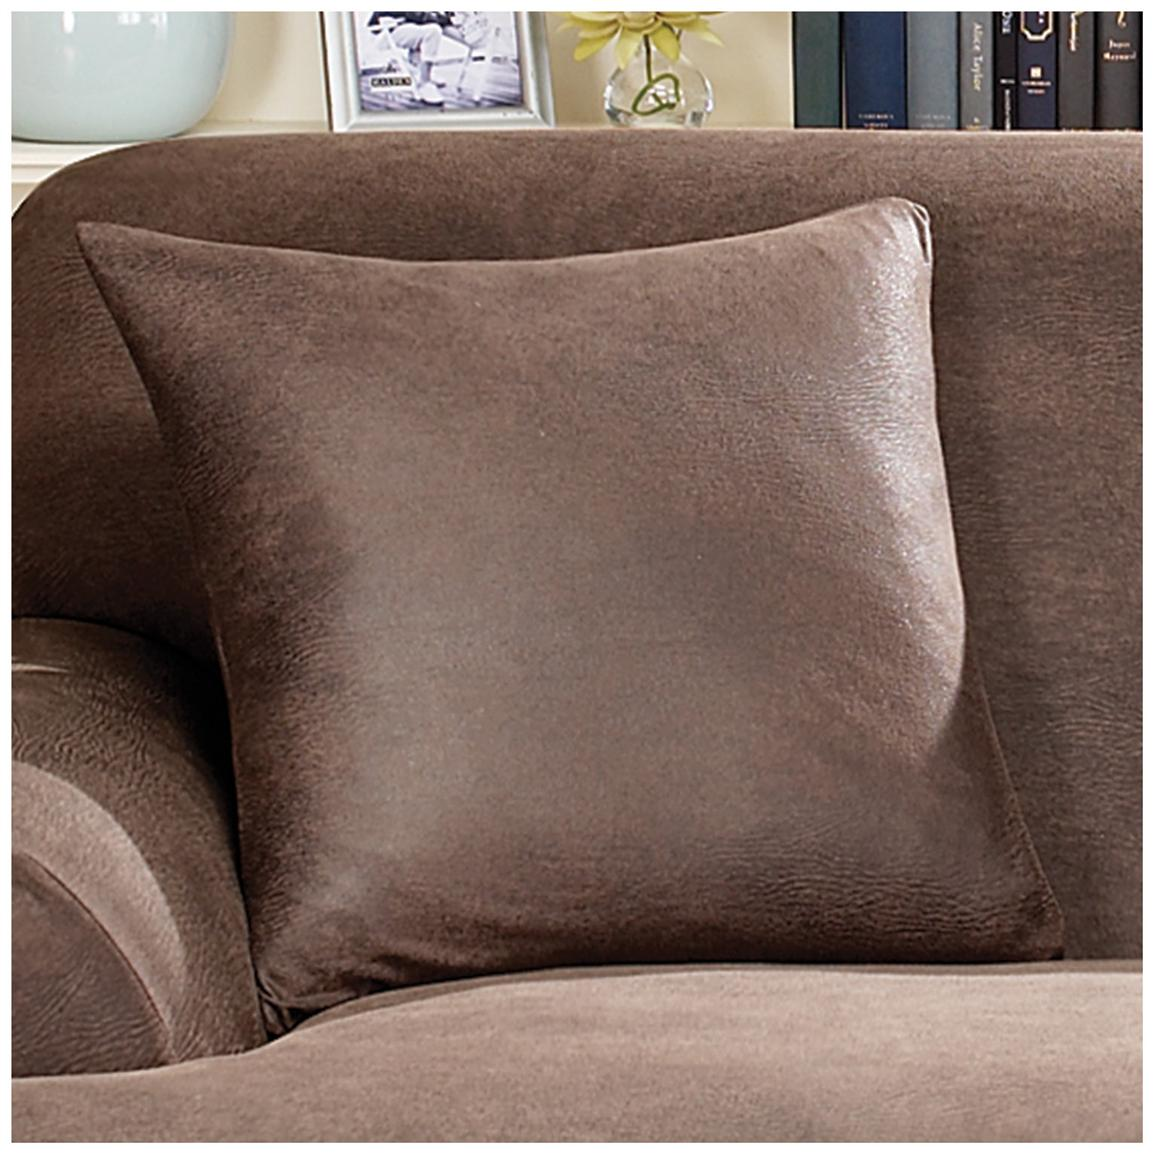 chaming sofa with tan surefit cover plus cushion for living room decor ideas